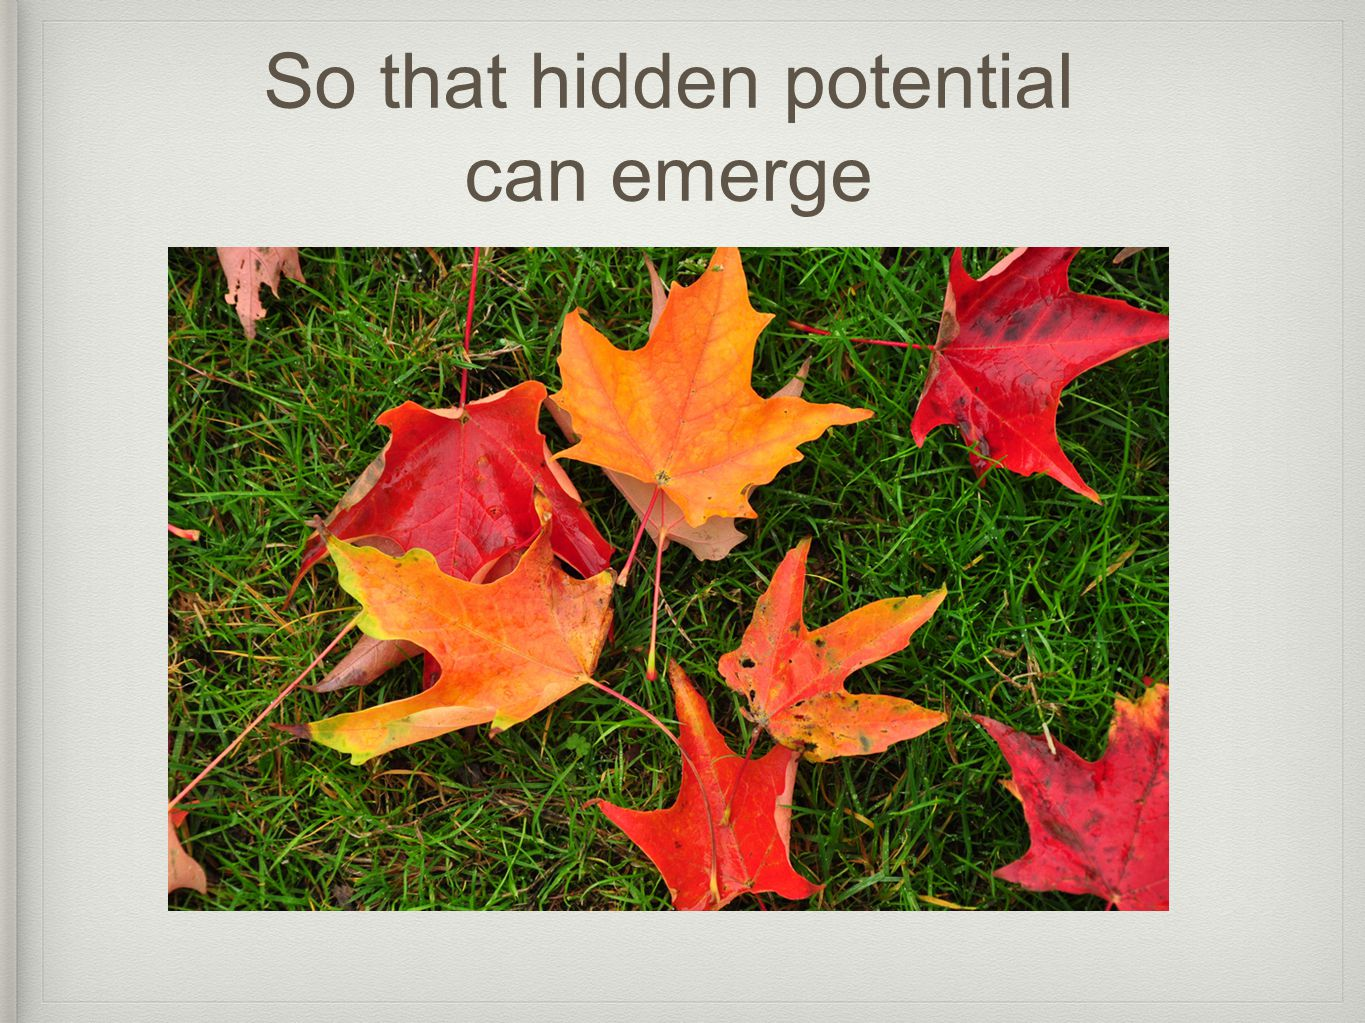 So that hidden potential can emerge